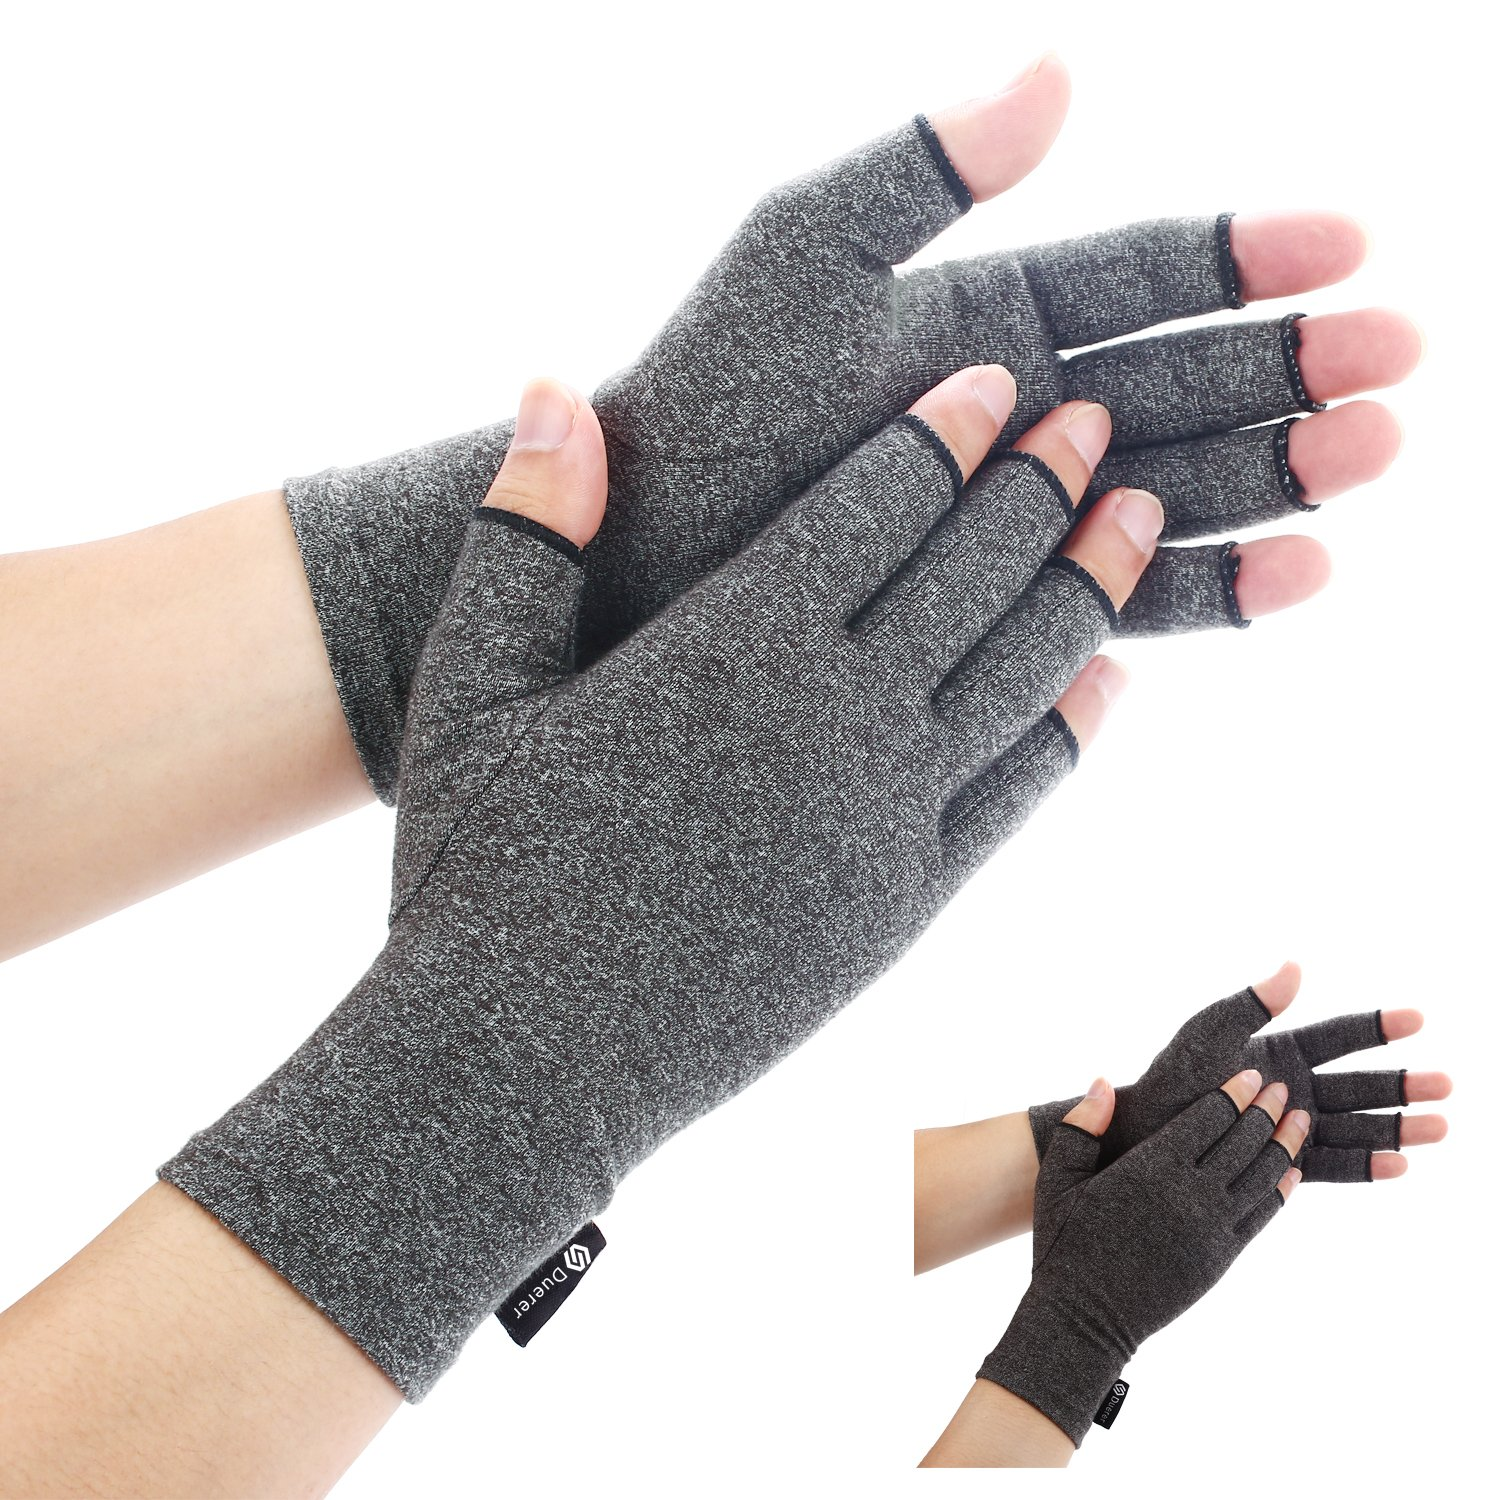 Duerer Arthritis Gloves Women Men for RSI, Carpal Tunnel, Rheumatiod, Tendonitis, Fingerless Hand Thumb Compression Gloves Small Medium Large XL for Pain Relief (XL, Black)